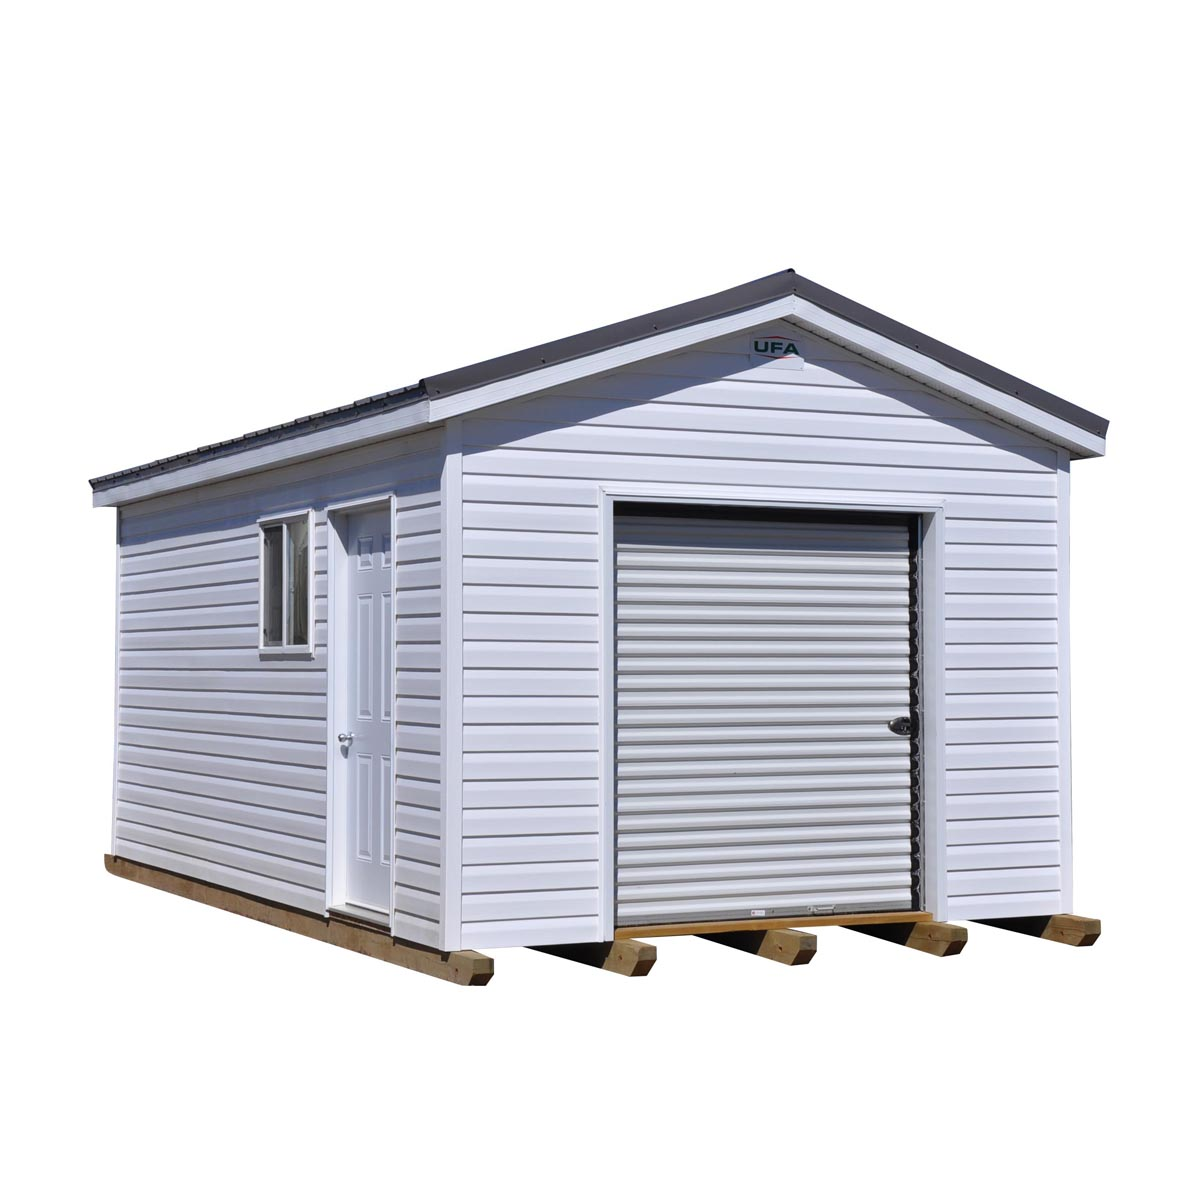 Super Shed 12'x20' with White Siding